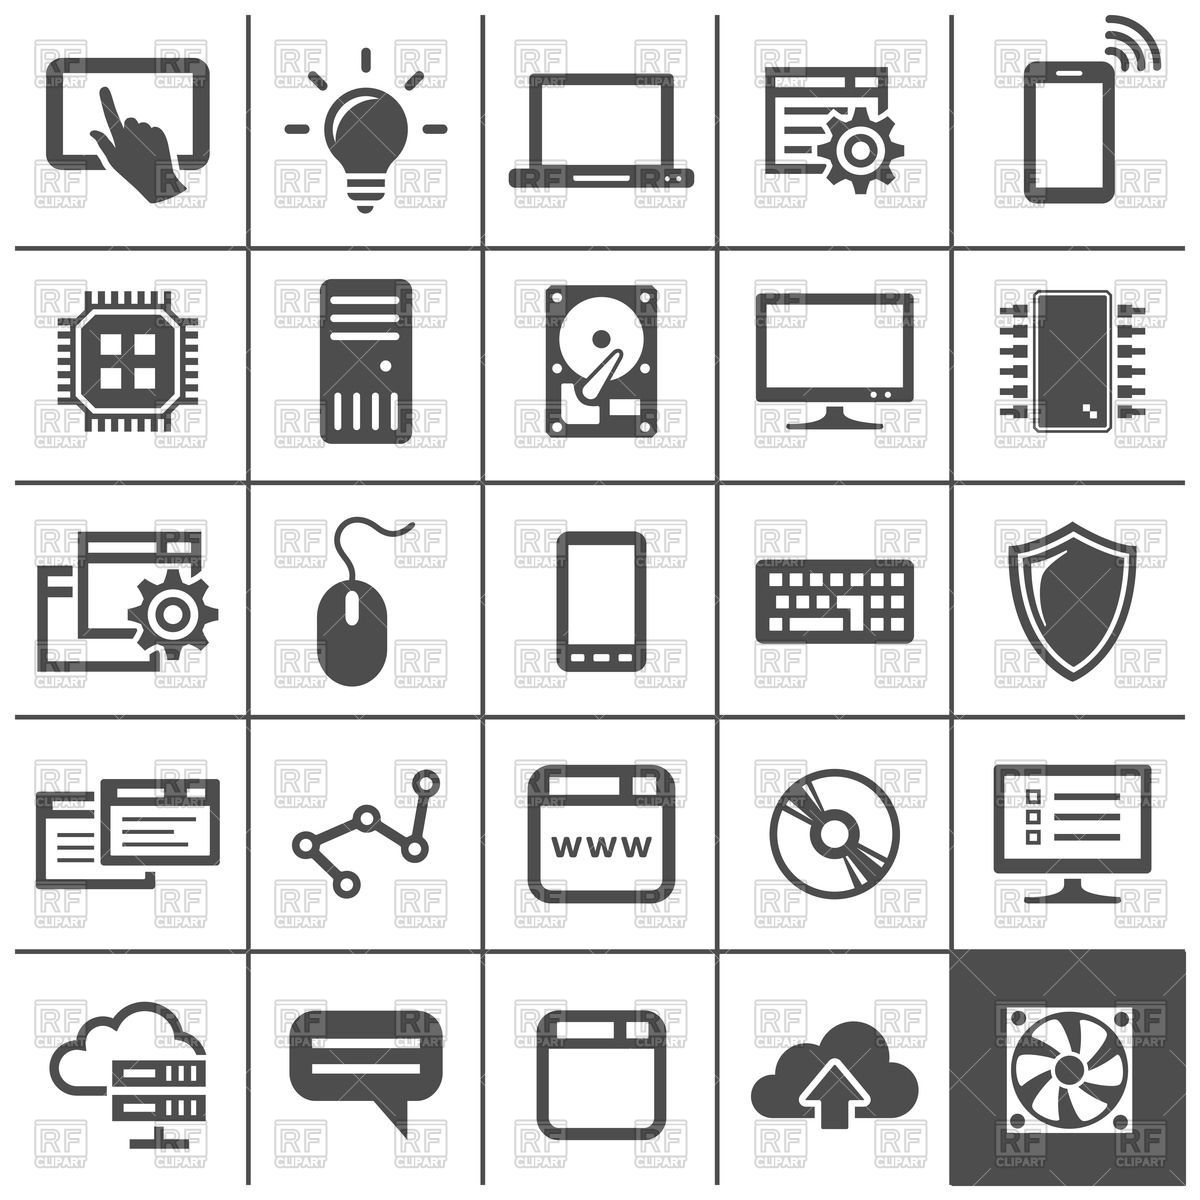 Computer Technology Icons Network Devices And Connections Vector Totolink Pl200kit 200mbps Powerline Adapter Free Clipart Graphics Art Cloud